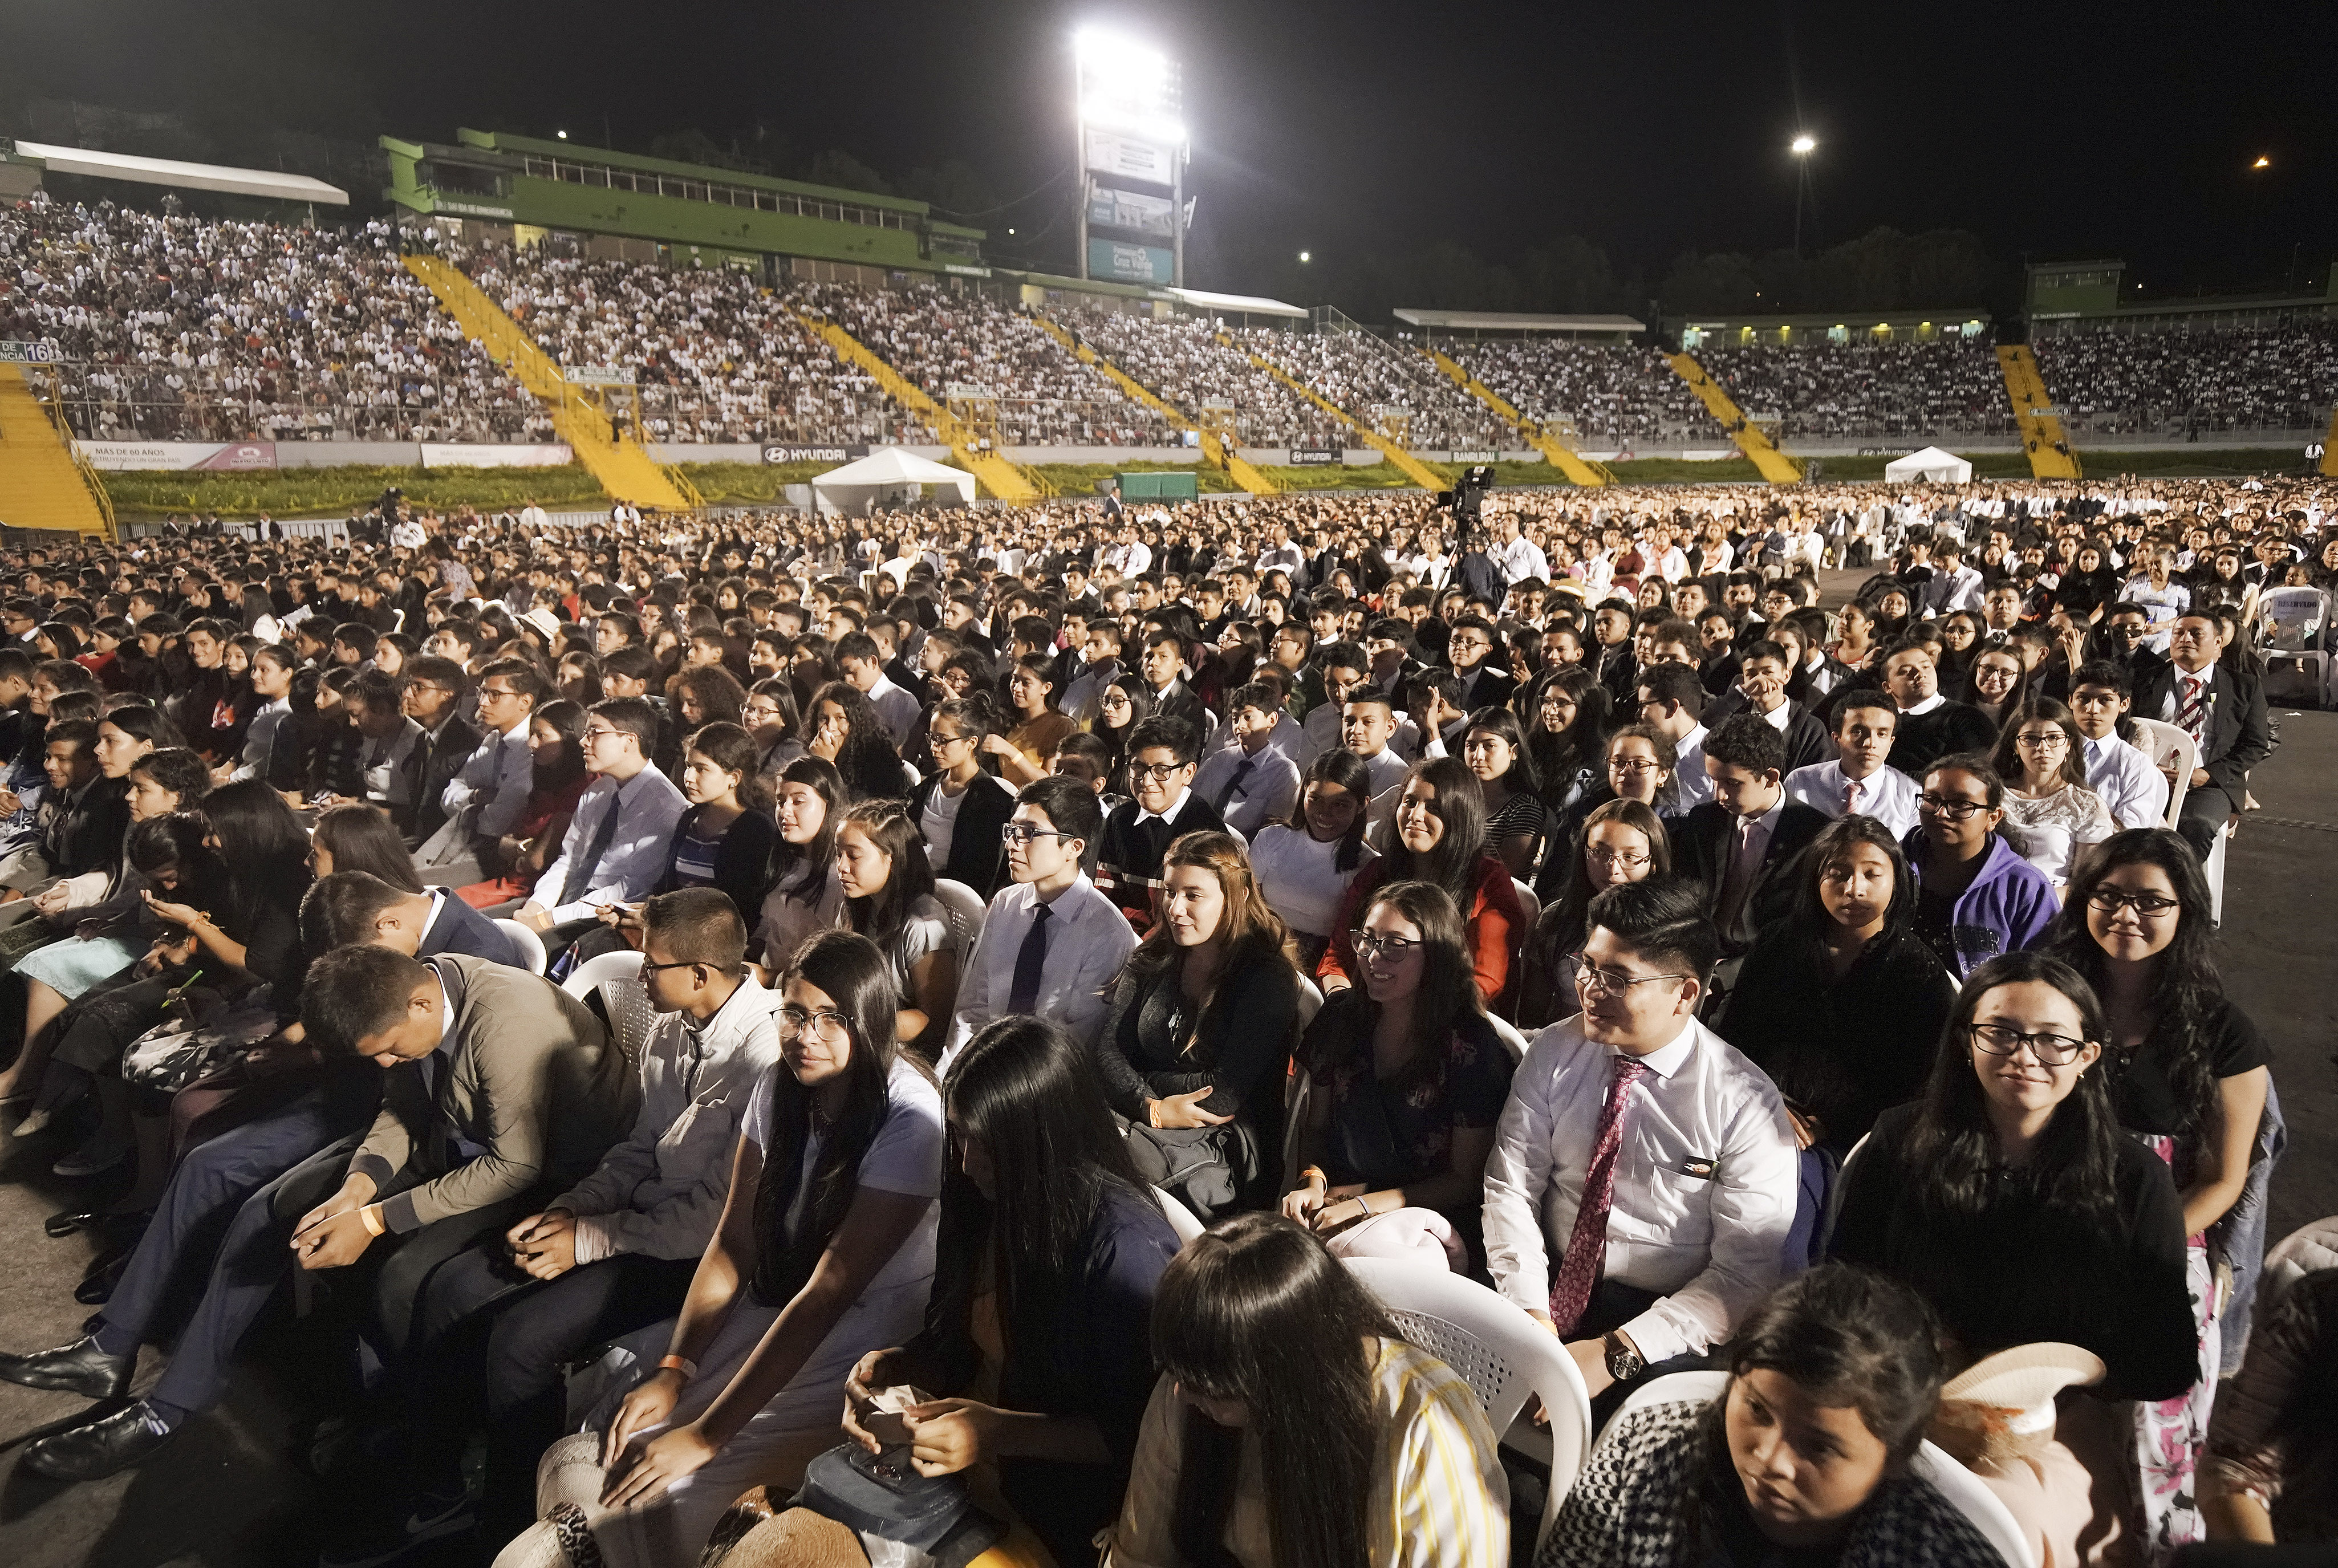 Attendees listen to President Russell M. Nelson of The Church of Jesus Christ of Latter-day Saints speak during a devotional at Estadio Cementos Progreso stadium in Guatemala City on Saturday, Aug. 24, 2019.